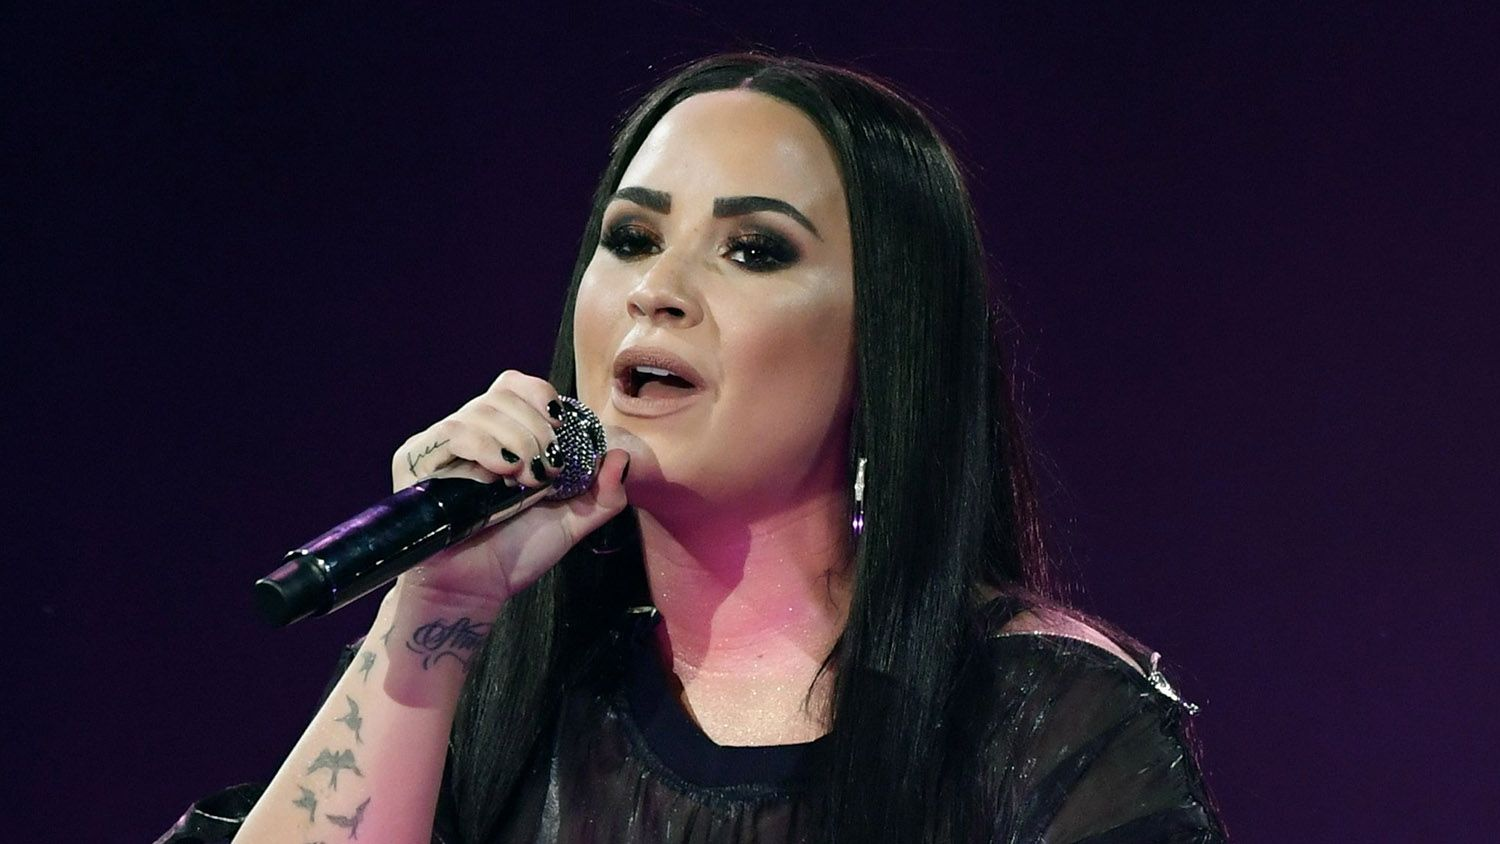 Demi Lovato releases first statement after suspected overdose